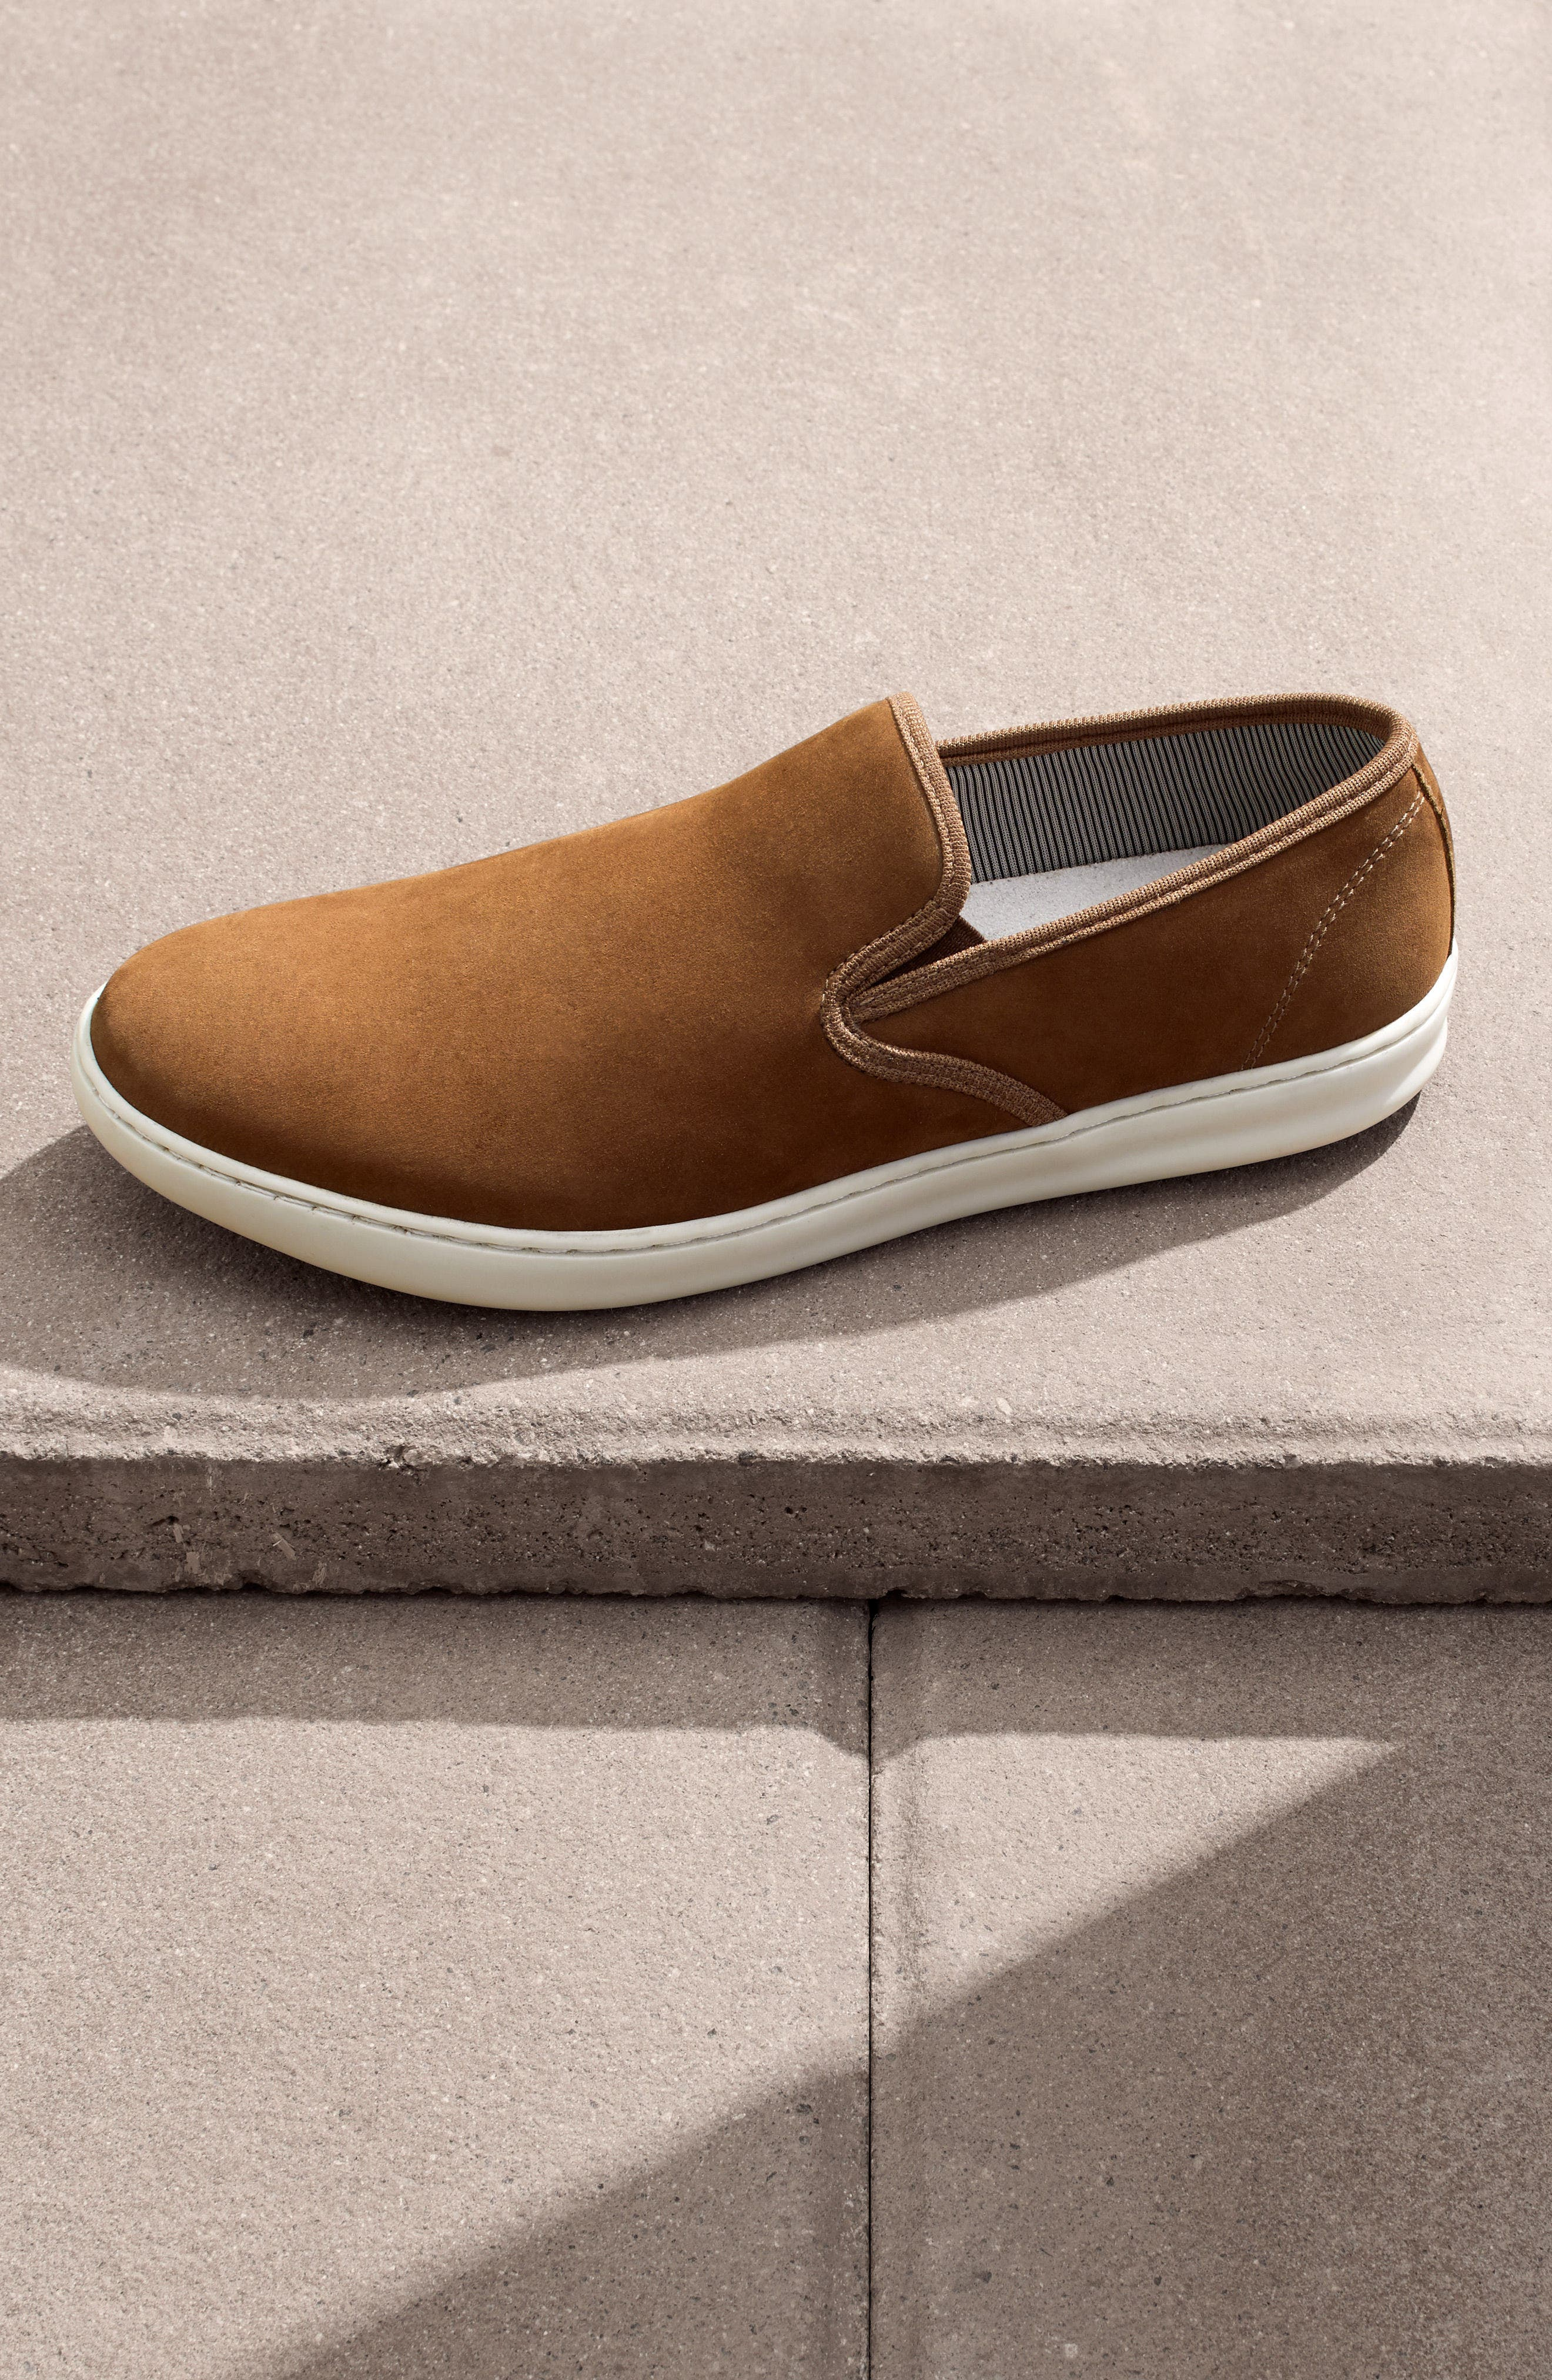 Malibu Slip-on,                             Alternate thumbnail 7, color,